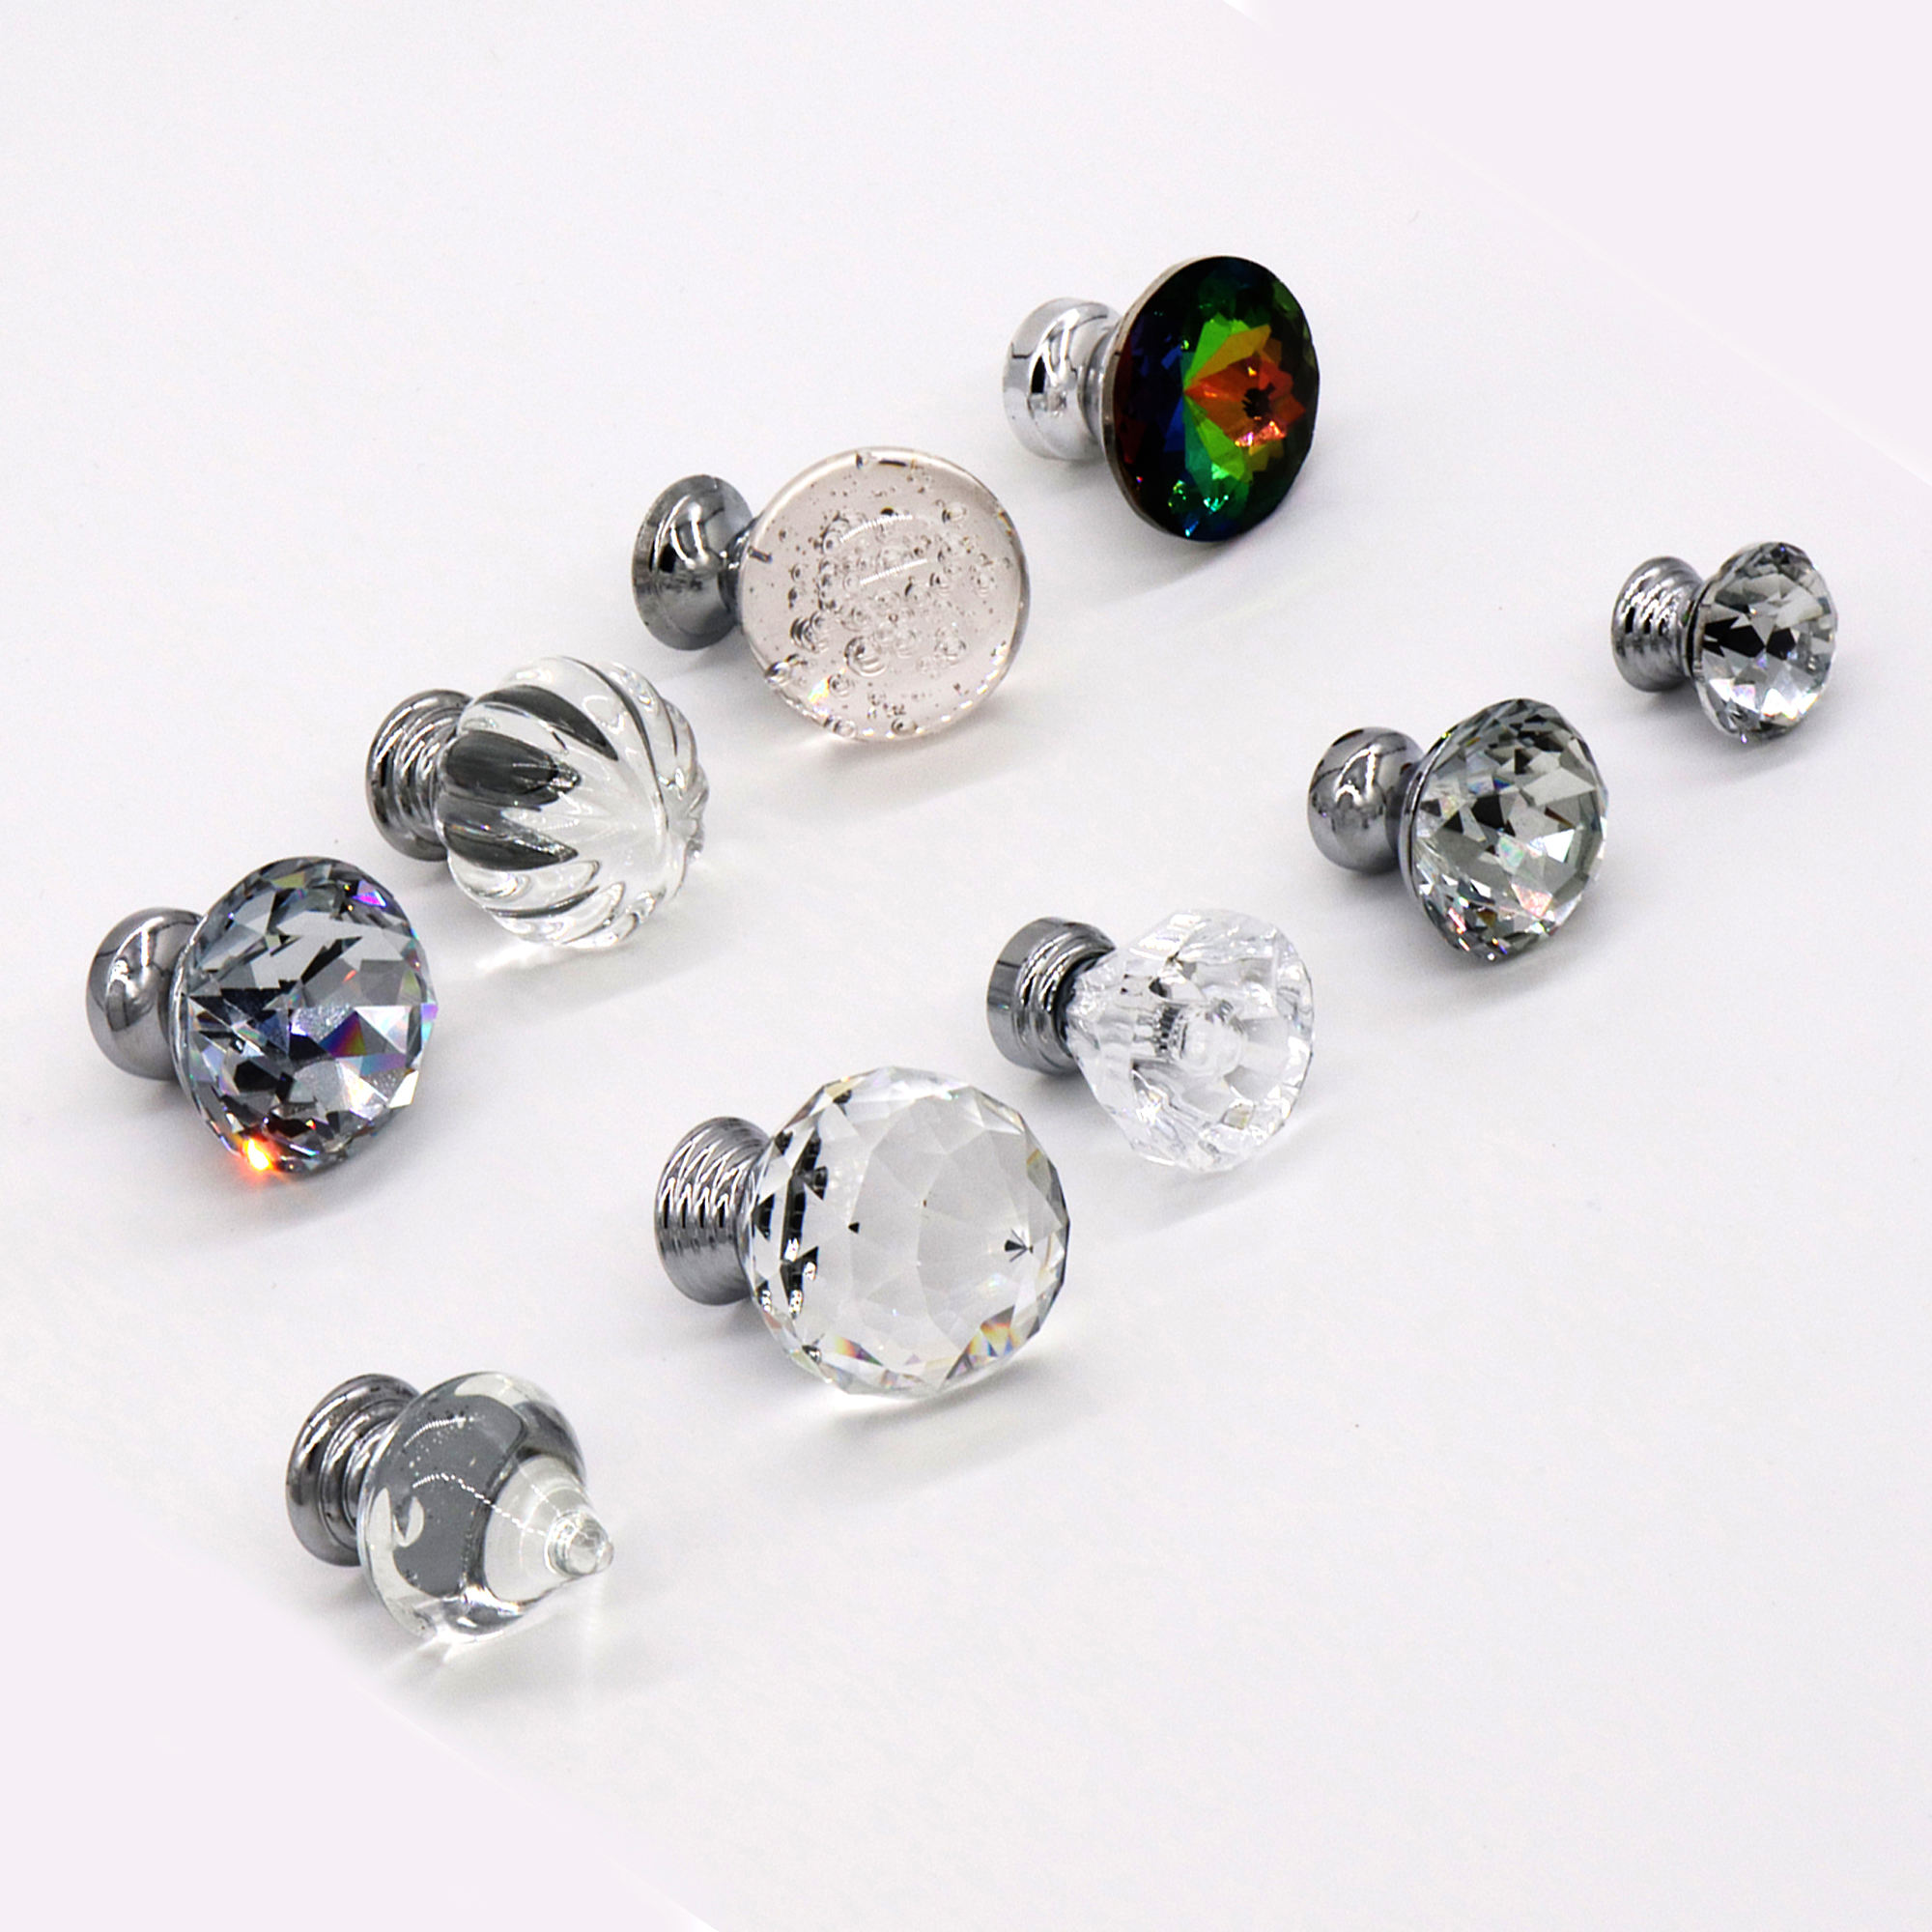 Knob Decorative Cheap Round Modern Wardrobe Drawer Furniture Chrome Acrylic Crystal Pull Kitchen Cabinet Crystal Handle Knob